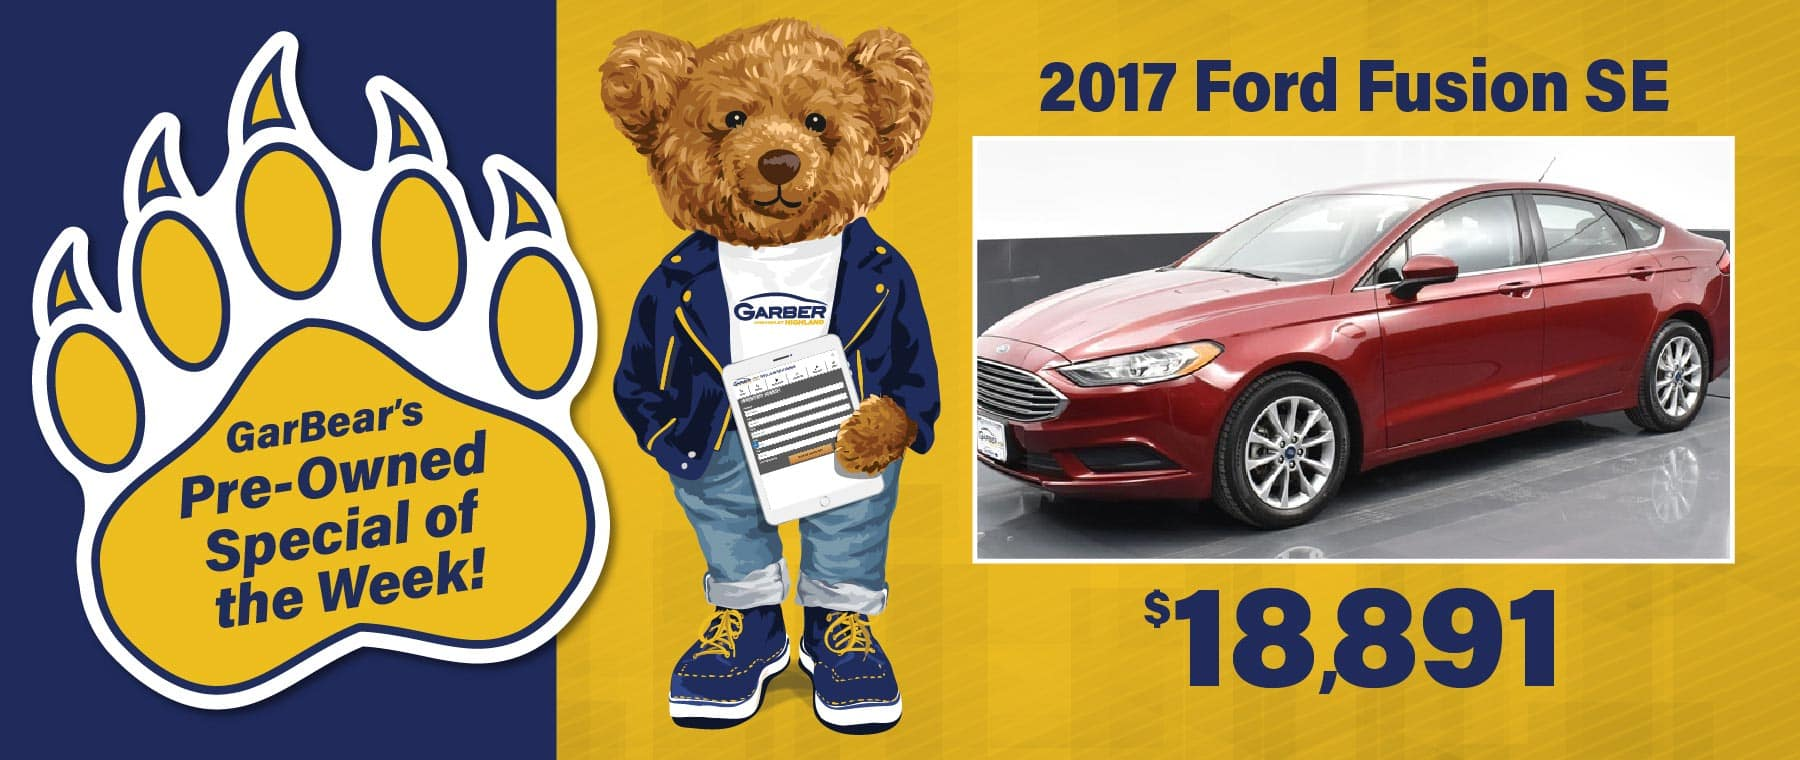 GarBear's Pre-Owned Special 2017 Ford Fusion $18,891